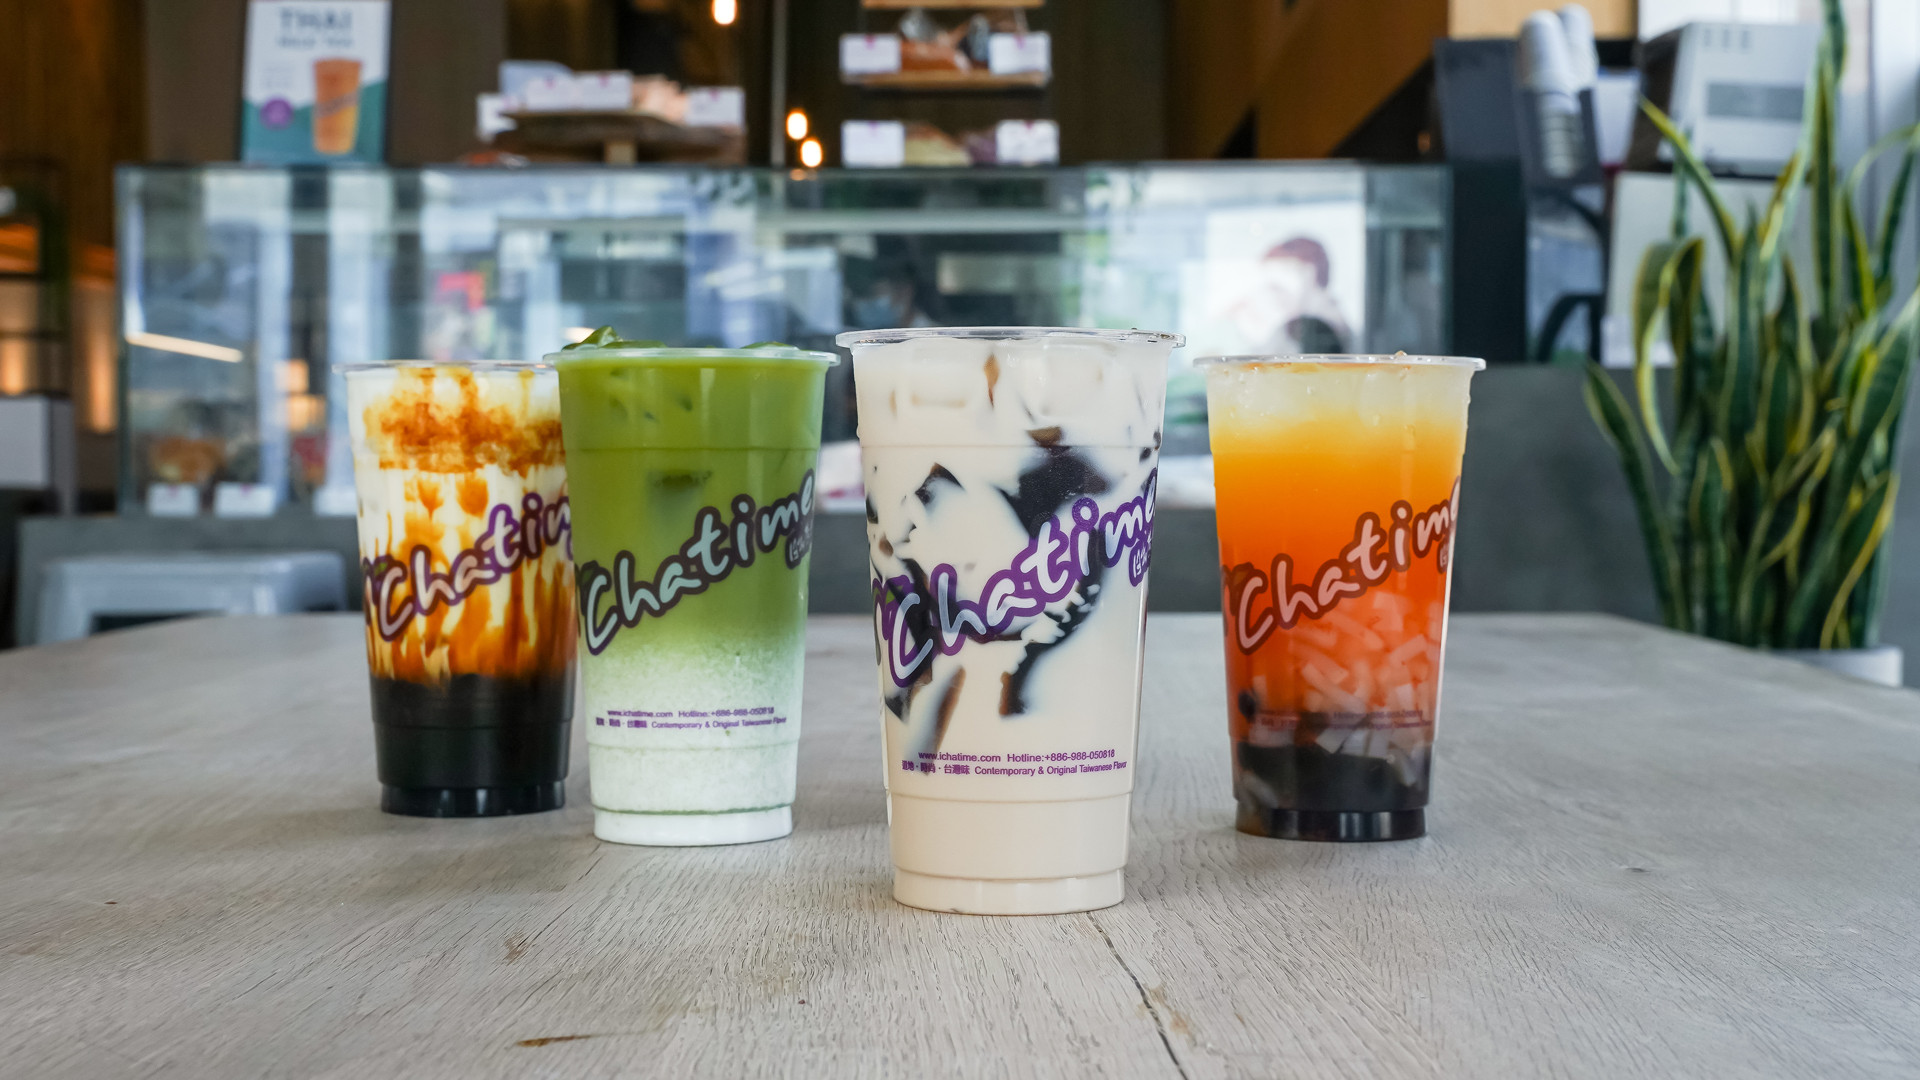 The best bubble tea in Toronto | different drink offerings from Chatime